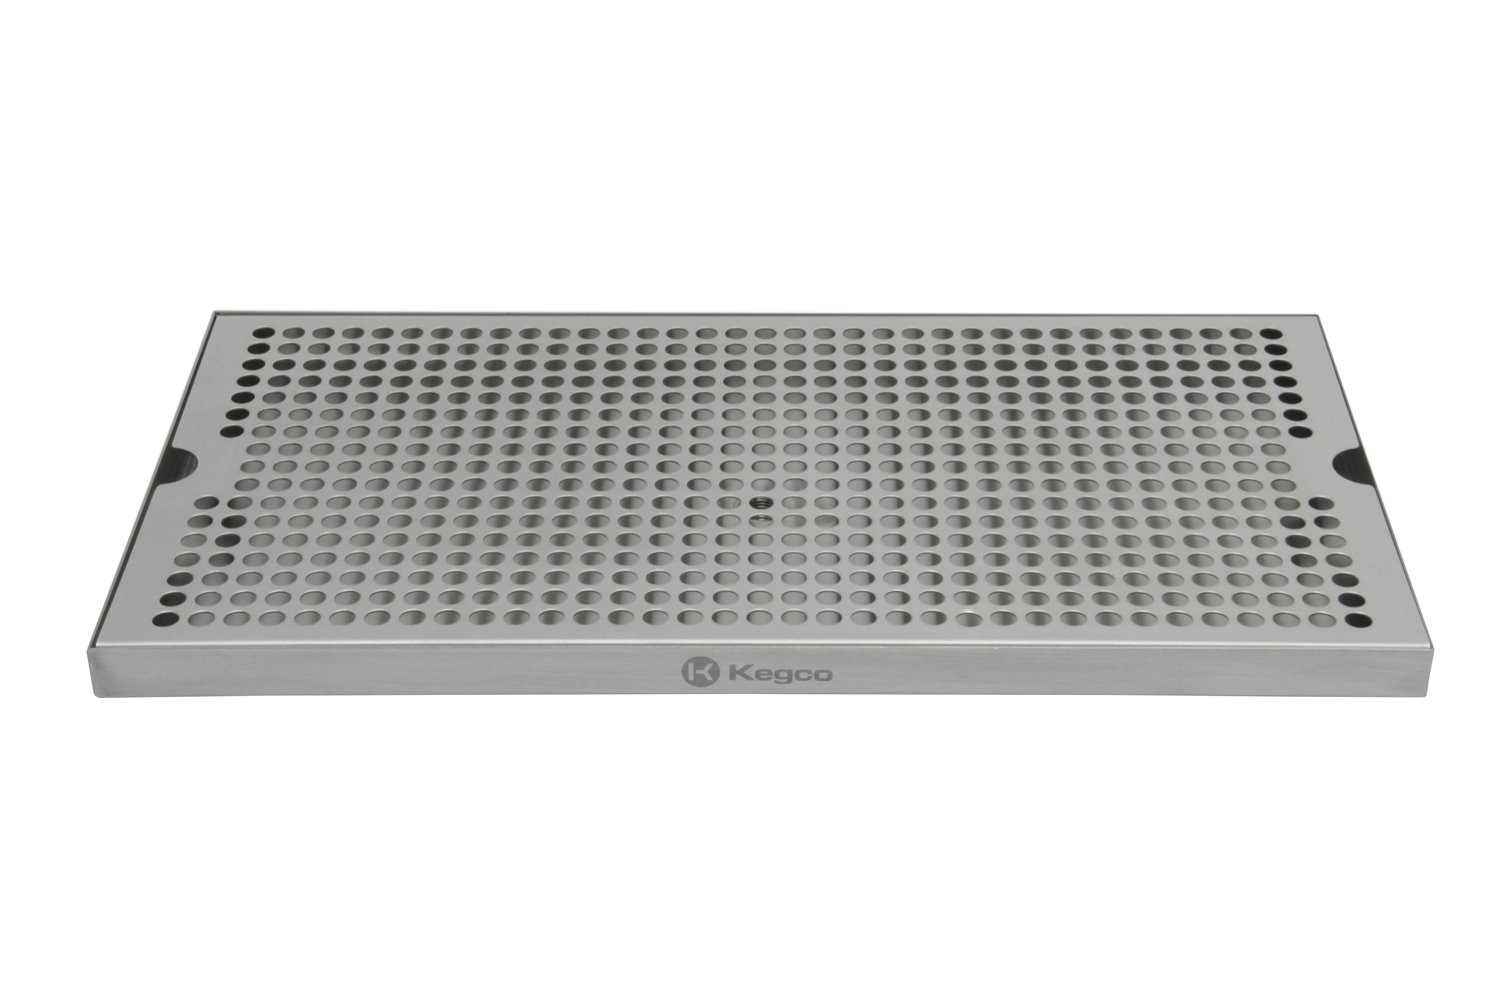 Kegco SESM-189D 18'' x 9'' Surface Mount Drip Tray with Drain by Kegco (Image #5)